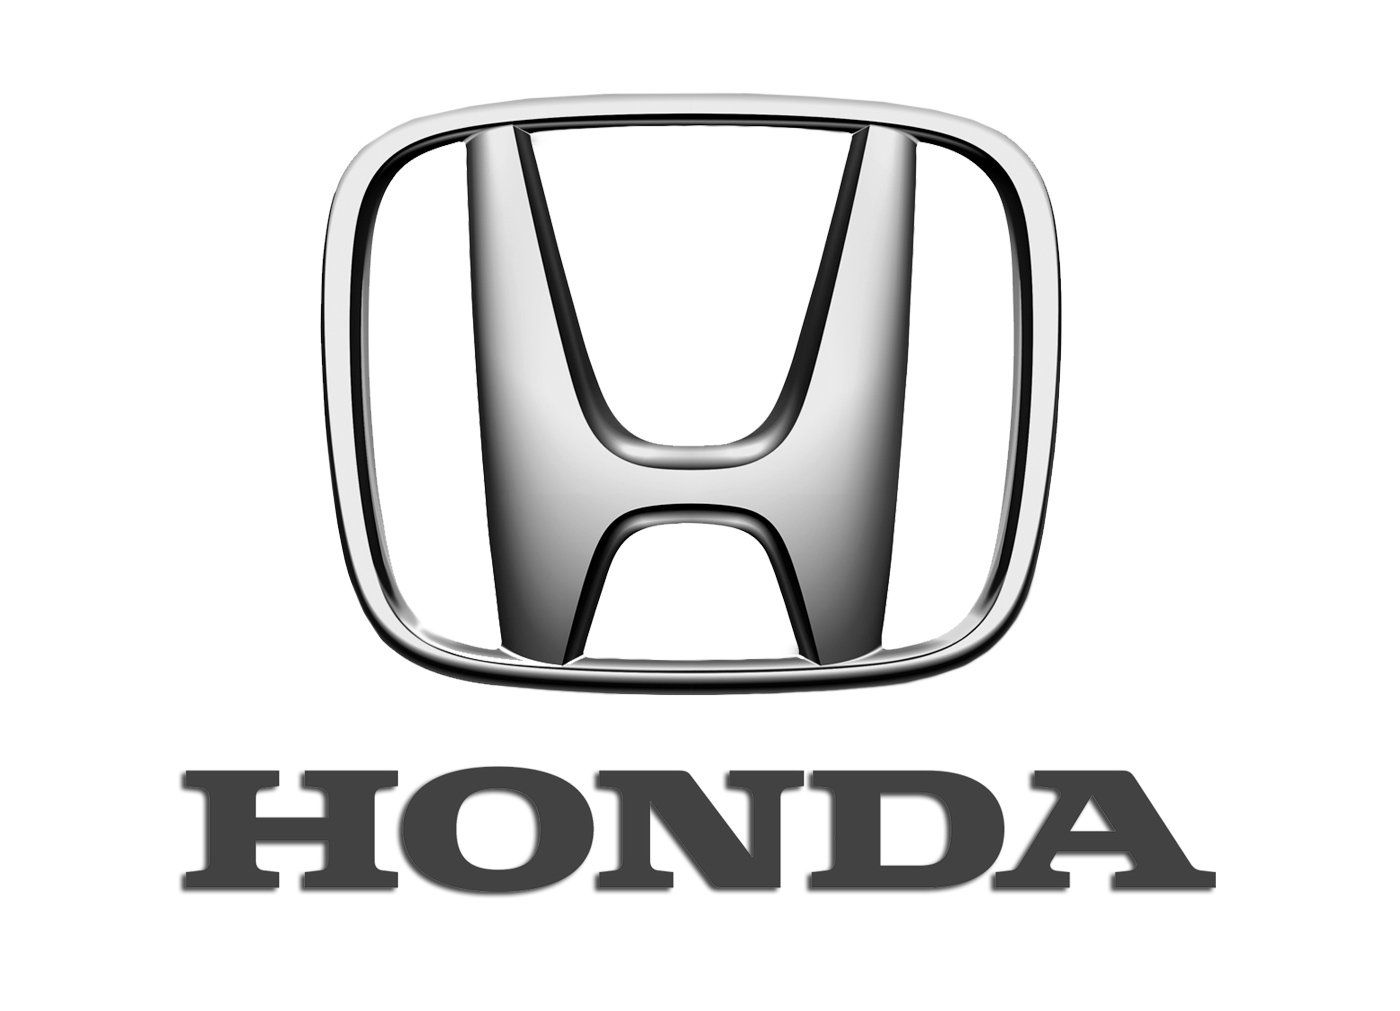 Large Honda Car Logo Zero To 60 Times Honda Logo Honda Car Logos